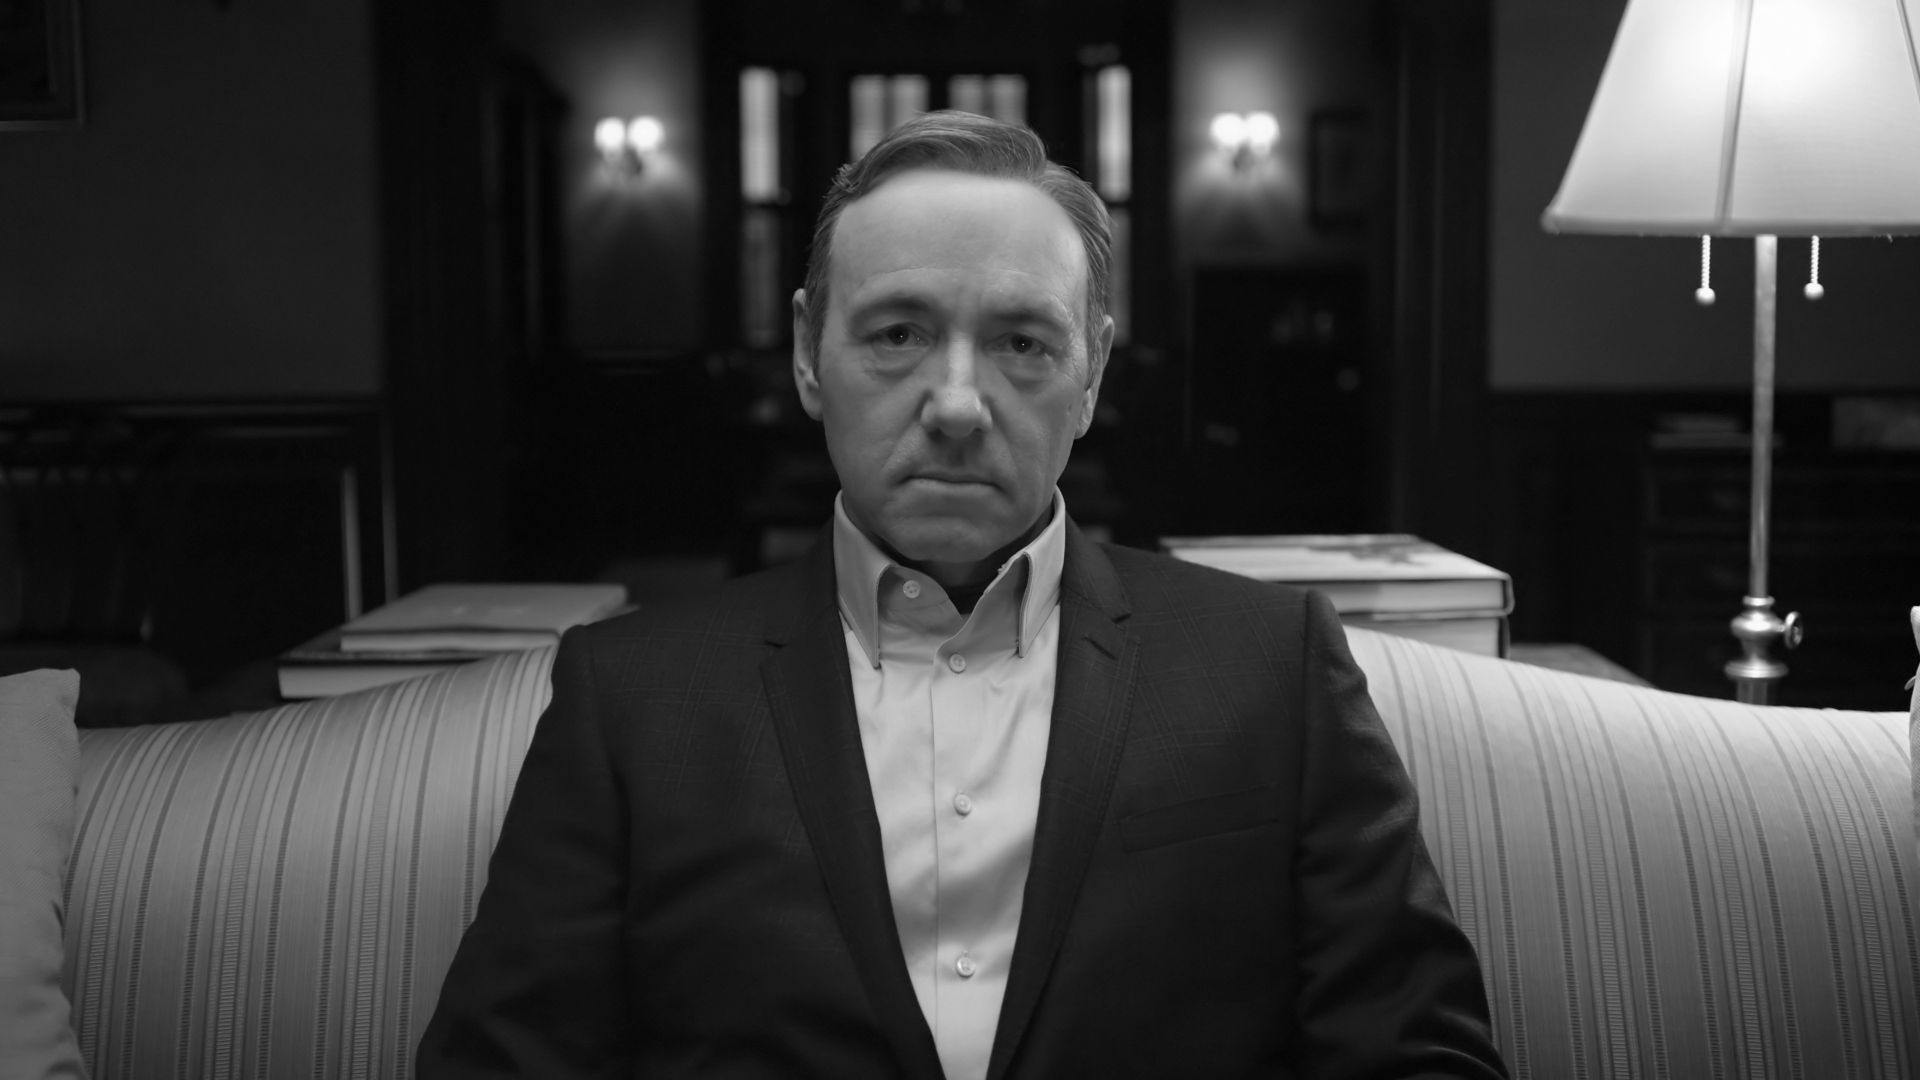 Wallpaper Kevin Spacey, House of Cards, monochrome, TV actor